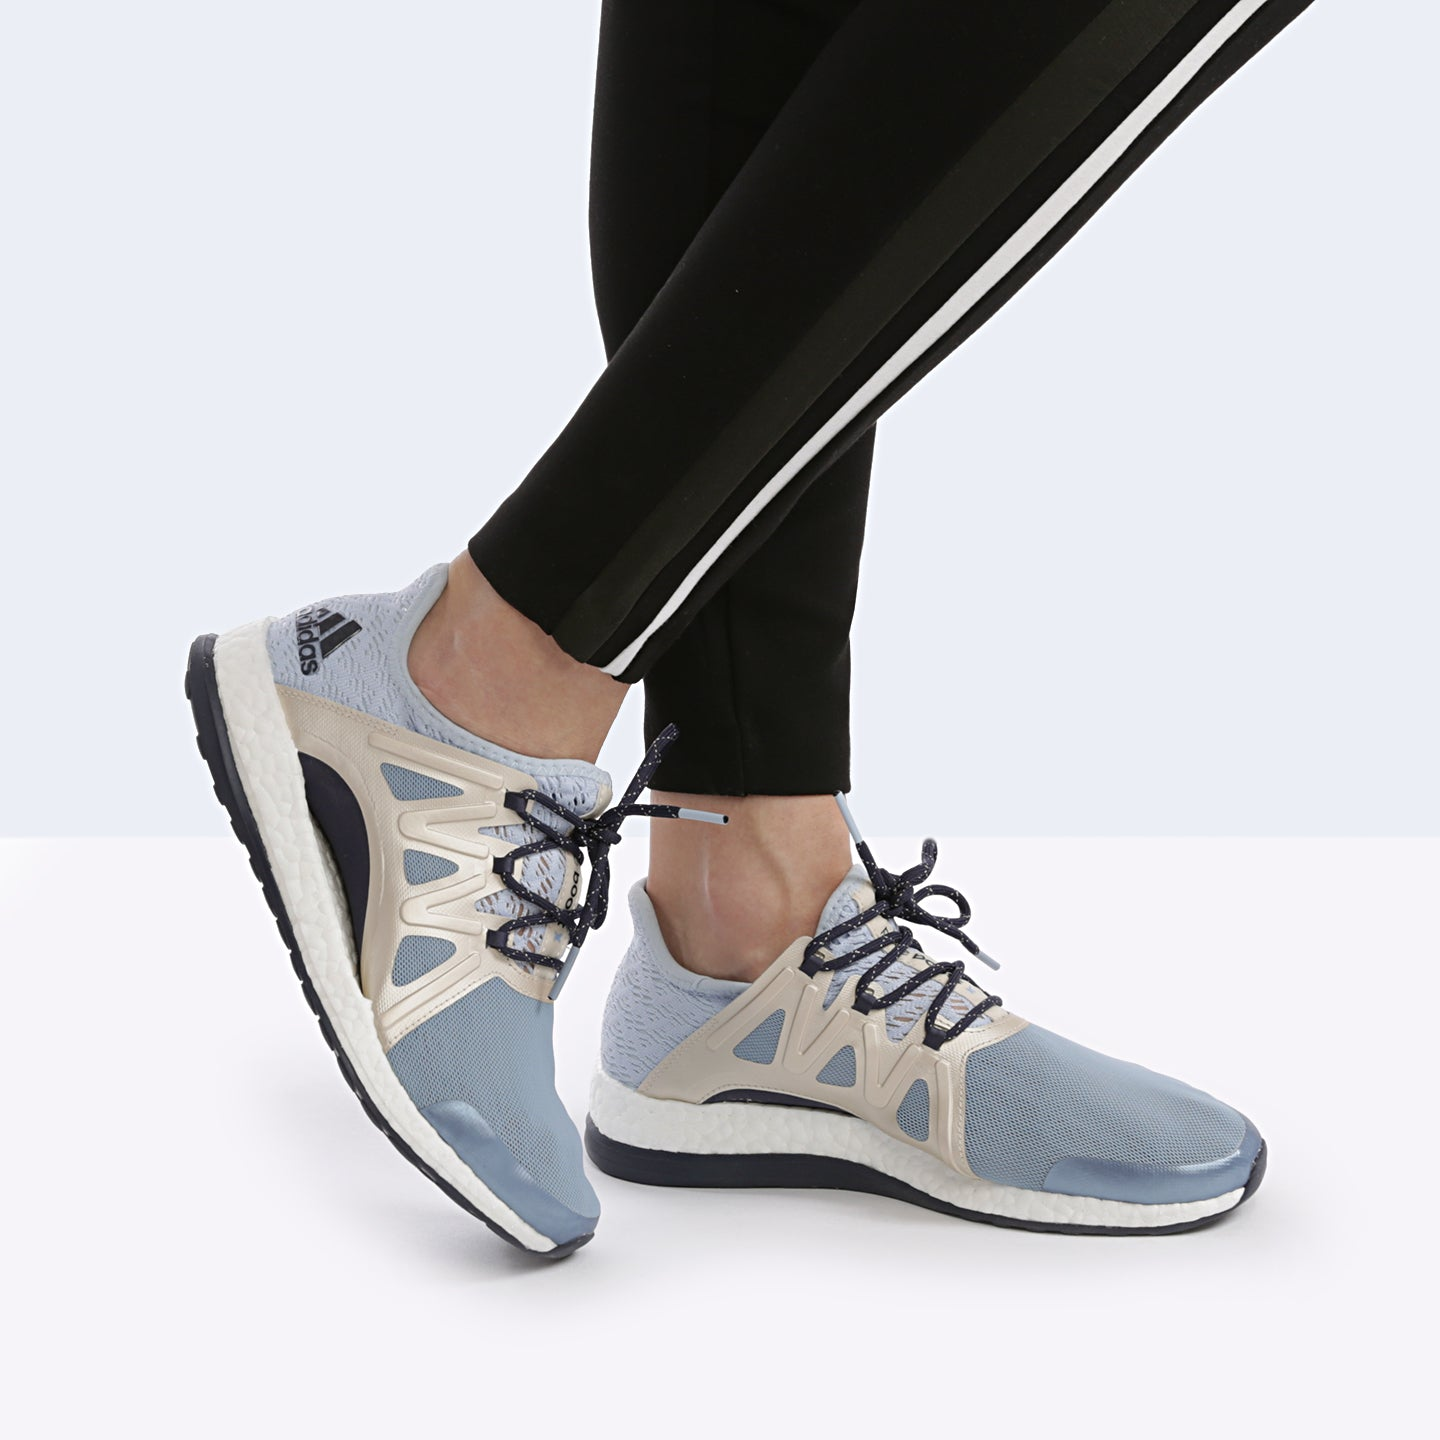 376dc3dad Women Running PureBOOST Xpose Clima Shoes BB1740 – Mann Sports Outlet